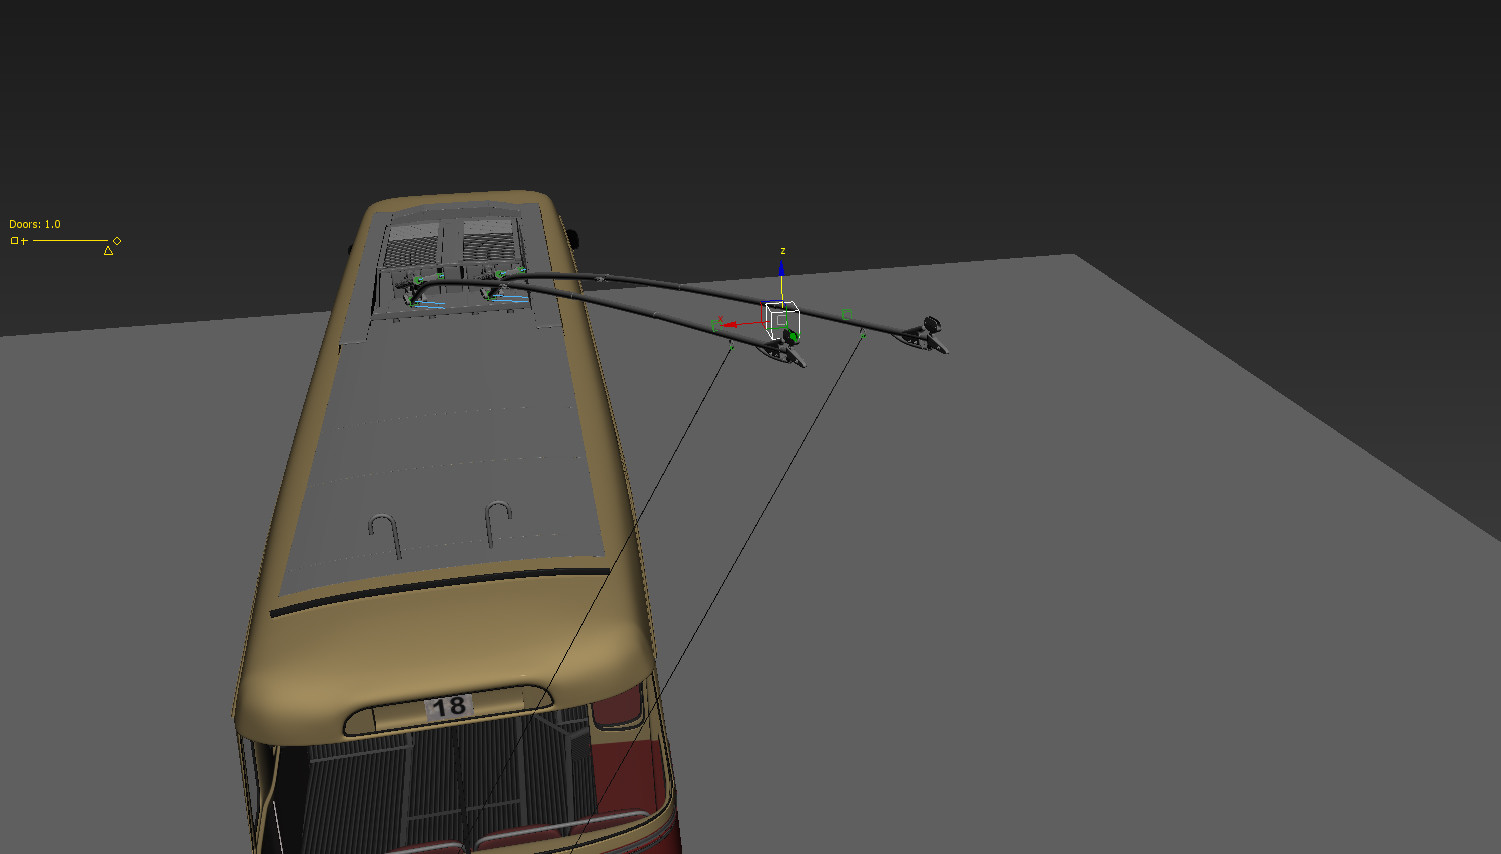 Trolley poles can be rotated in all directions by moving dummy object.